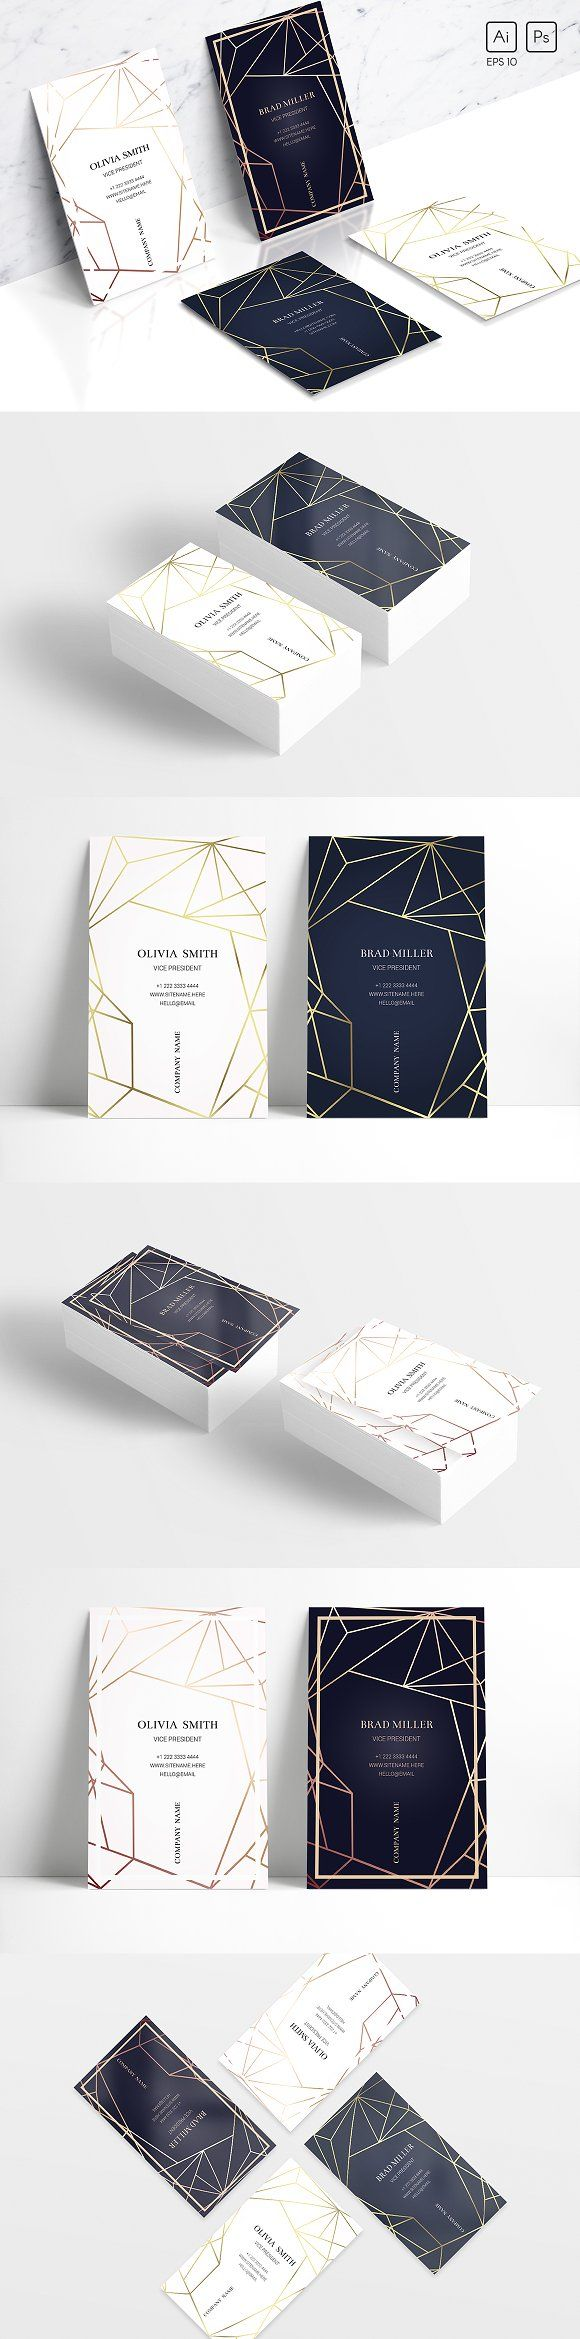 Geometric business card template - Trendy gold and bronze. US and UK formats. Ai CS5, EPS10 and PSD files. Women's and men's design. Perfect for business and creative people. Serious and strict style. Fashionable and modern design will provide you with a decent image. Just bring the file to your print shop! by Radionova Anastasia $10 #affiliatelink